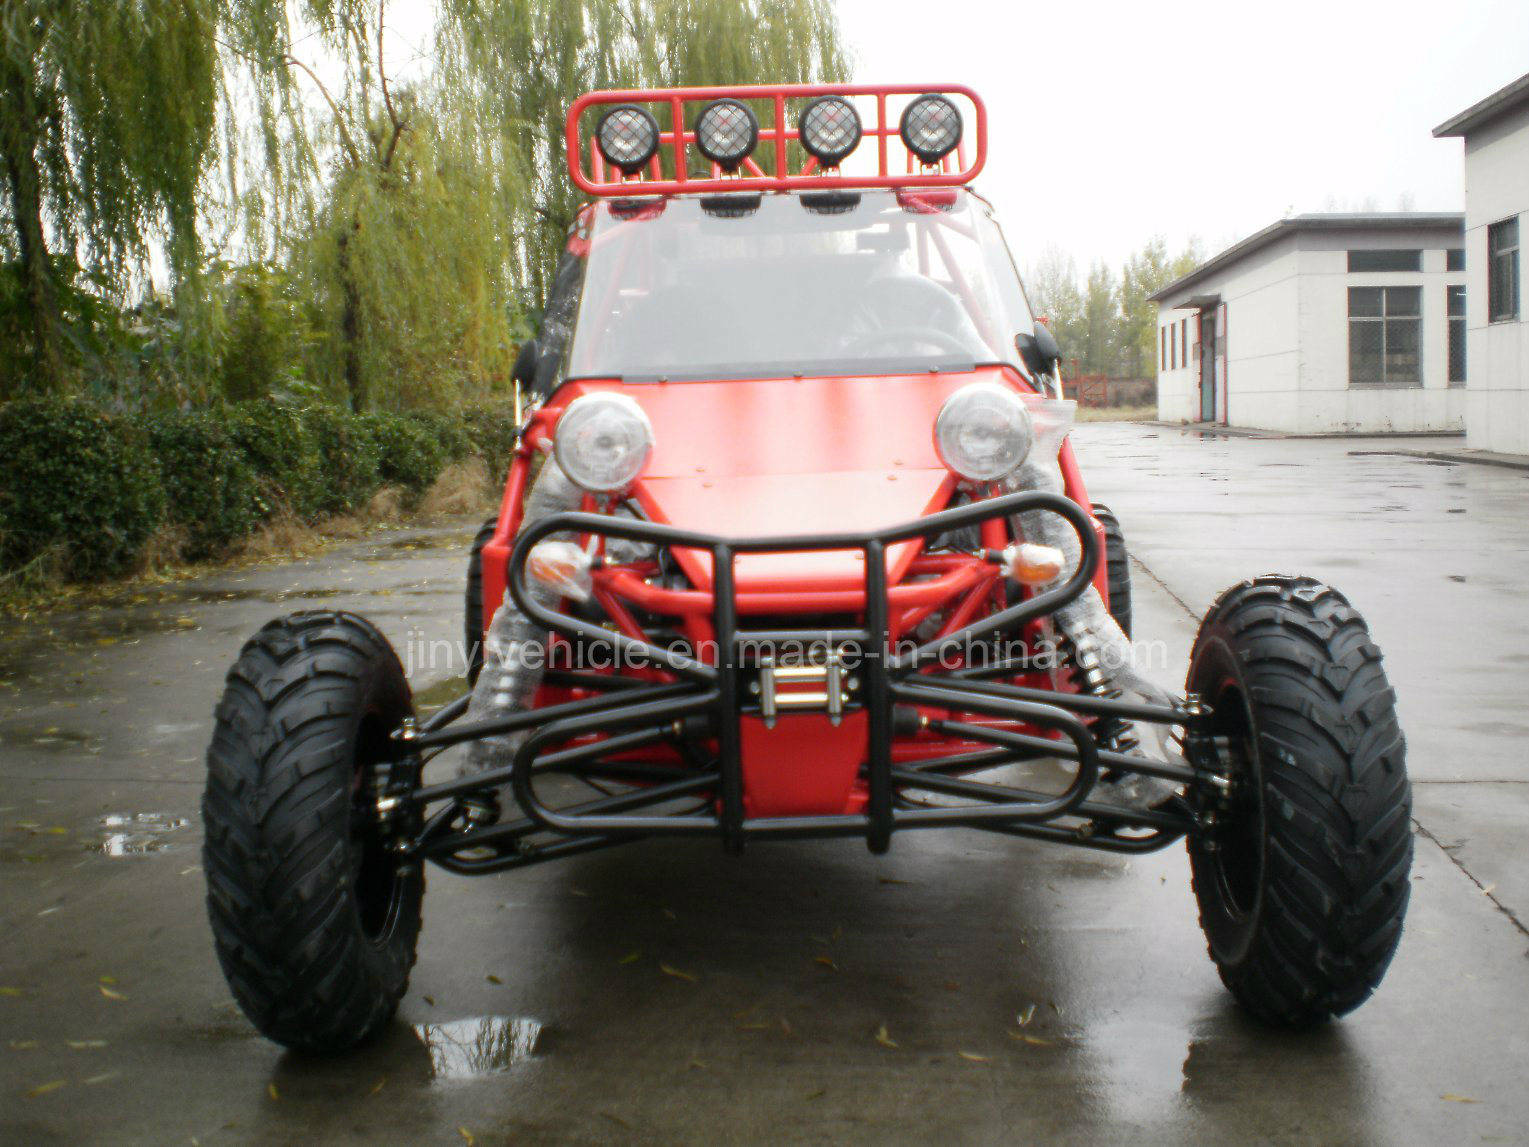 1000cc Big Power Two Seats ATV with EEC EPA Approved